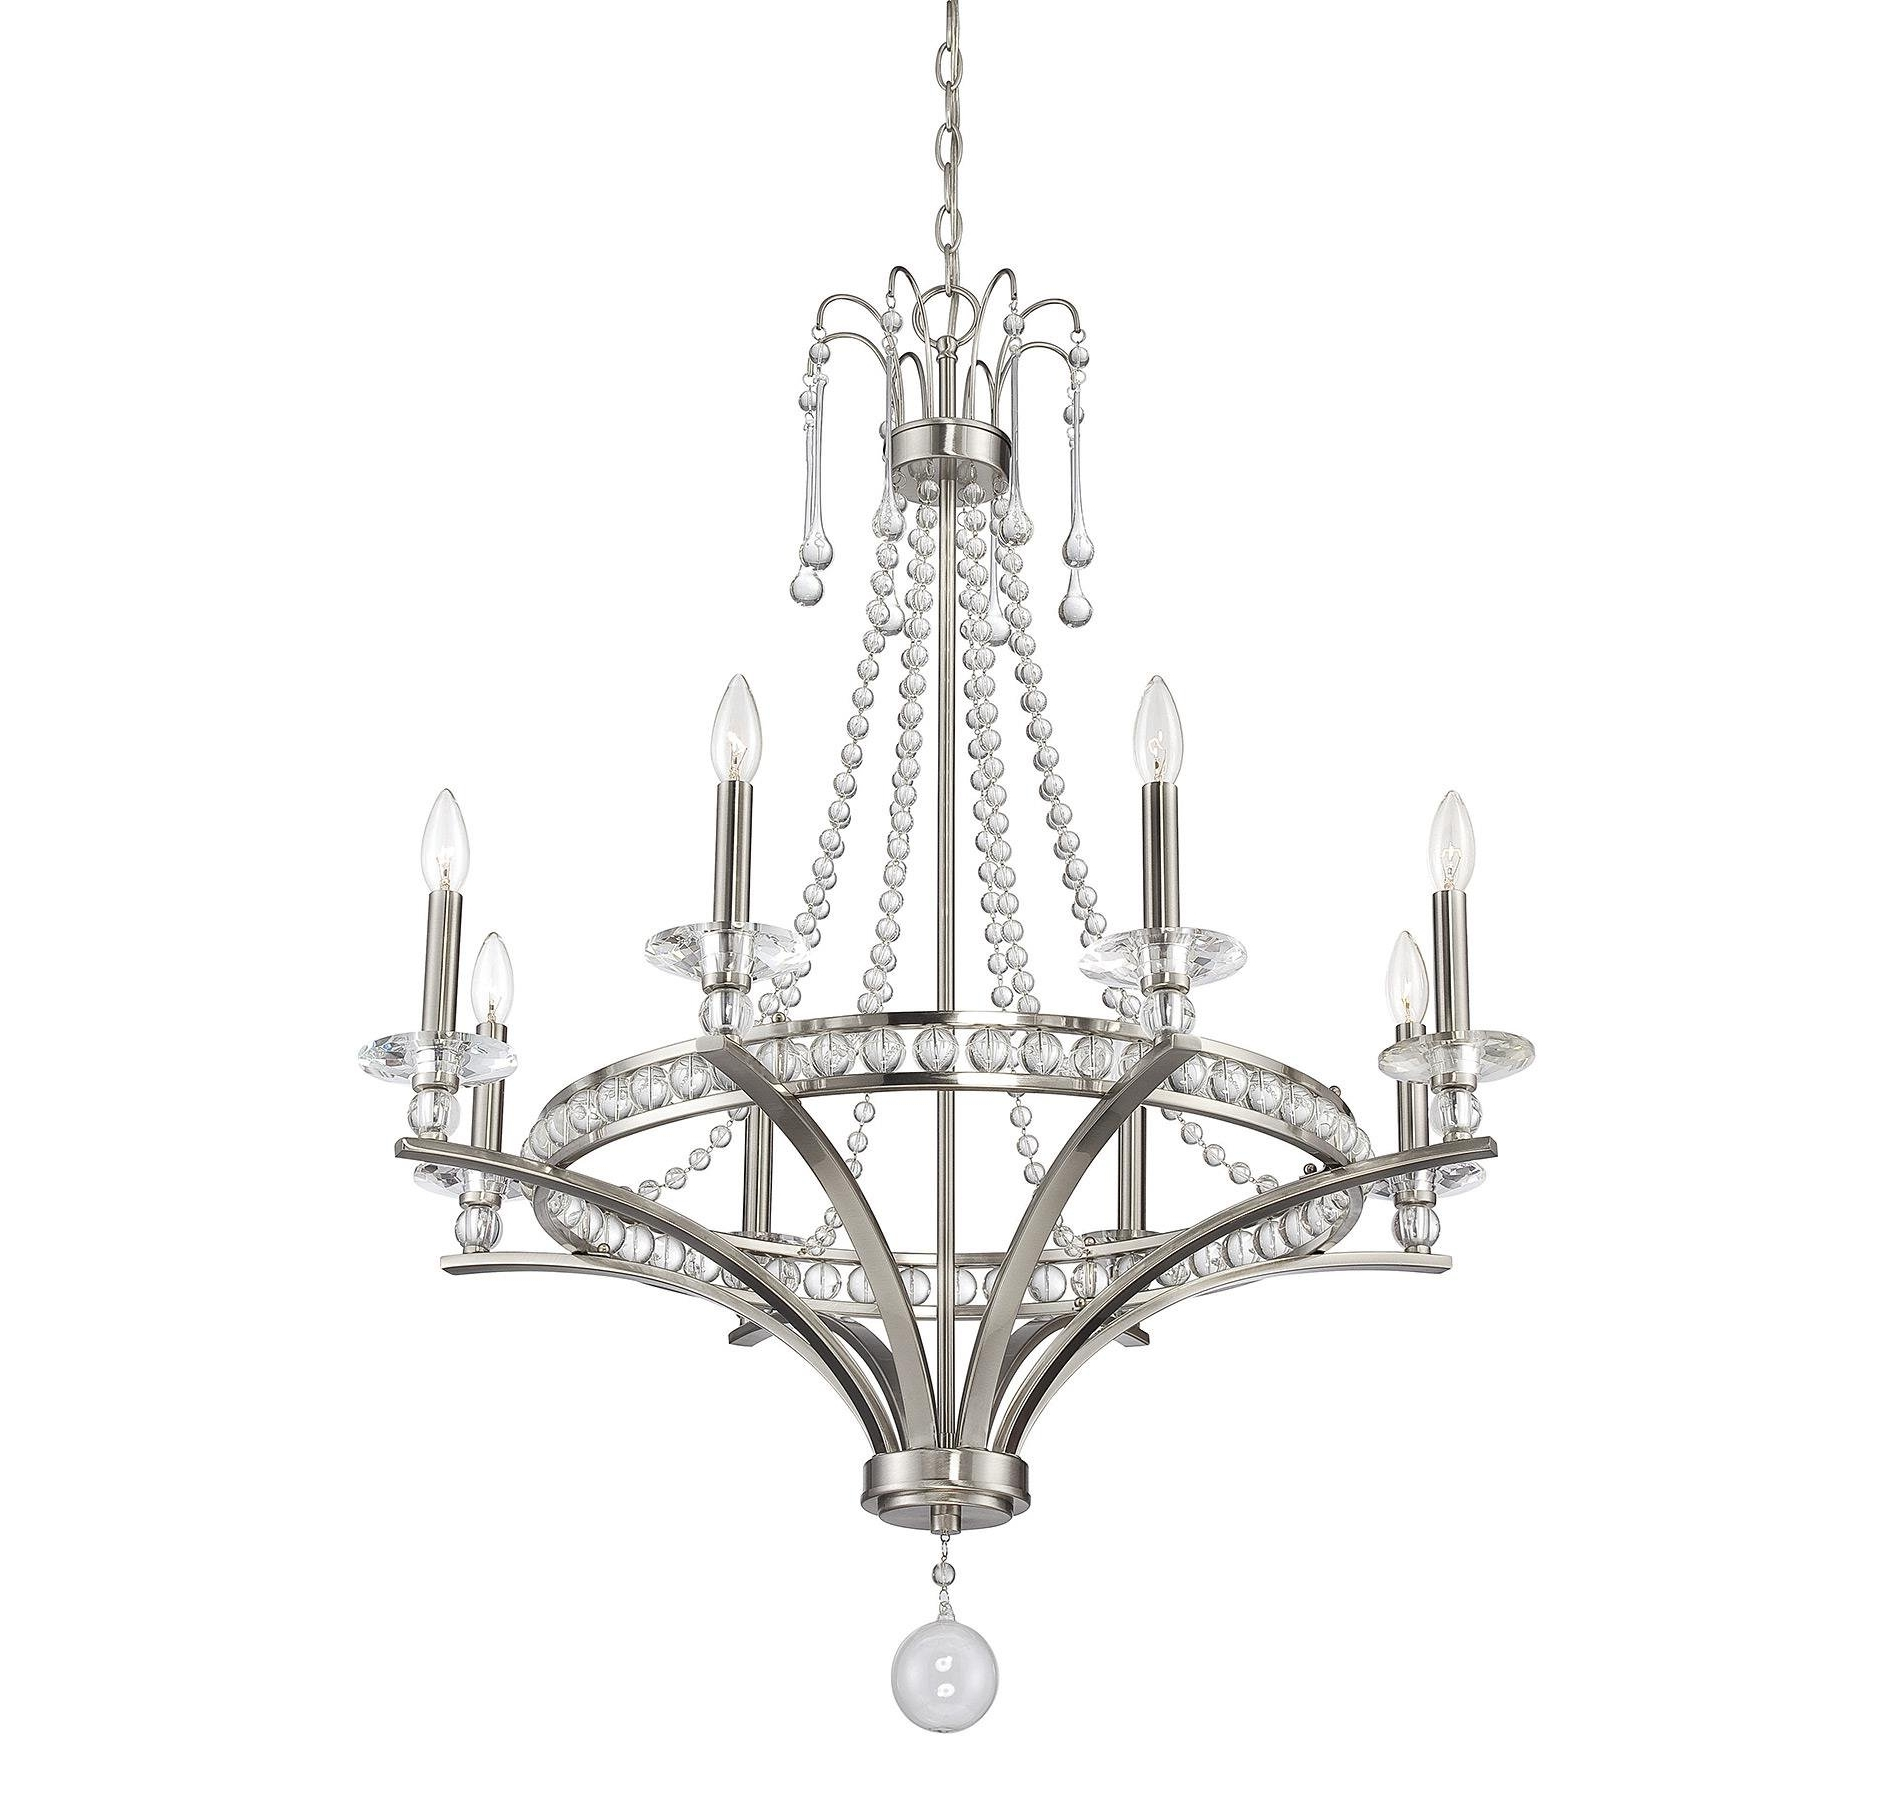 Savoy House Chandeliers Regarding Widely Used Awesome Savoy House Chandeliers 79 In Home Remodel Ideas With Savoy (View 11 of 20)